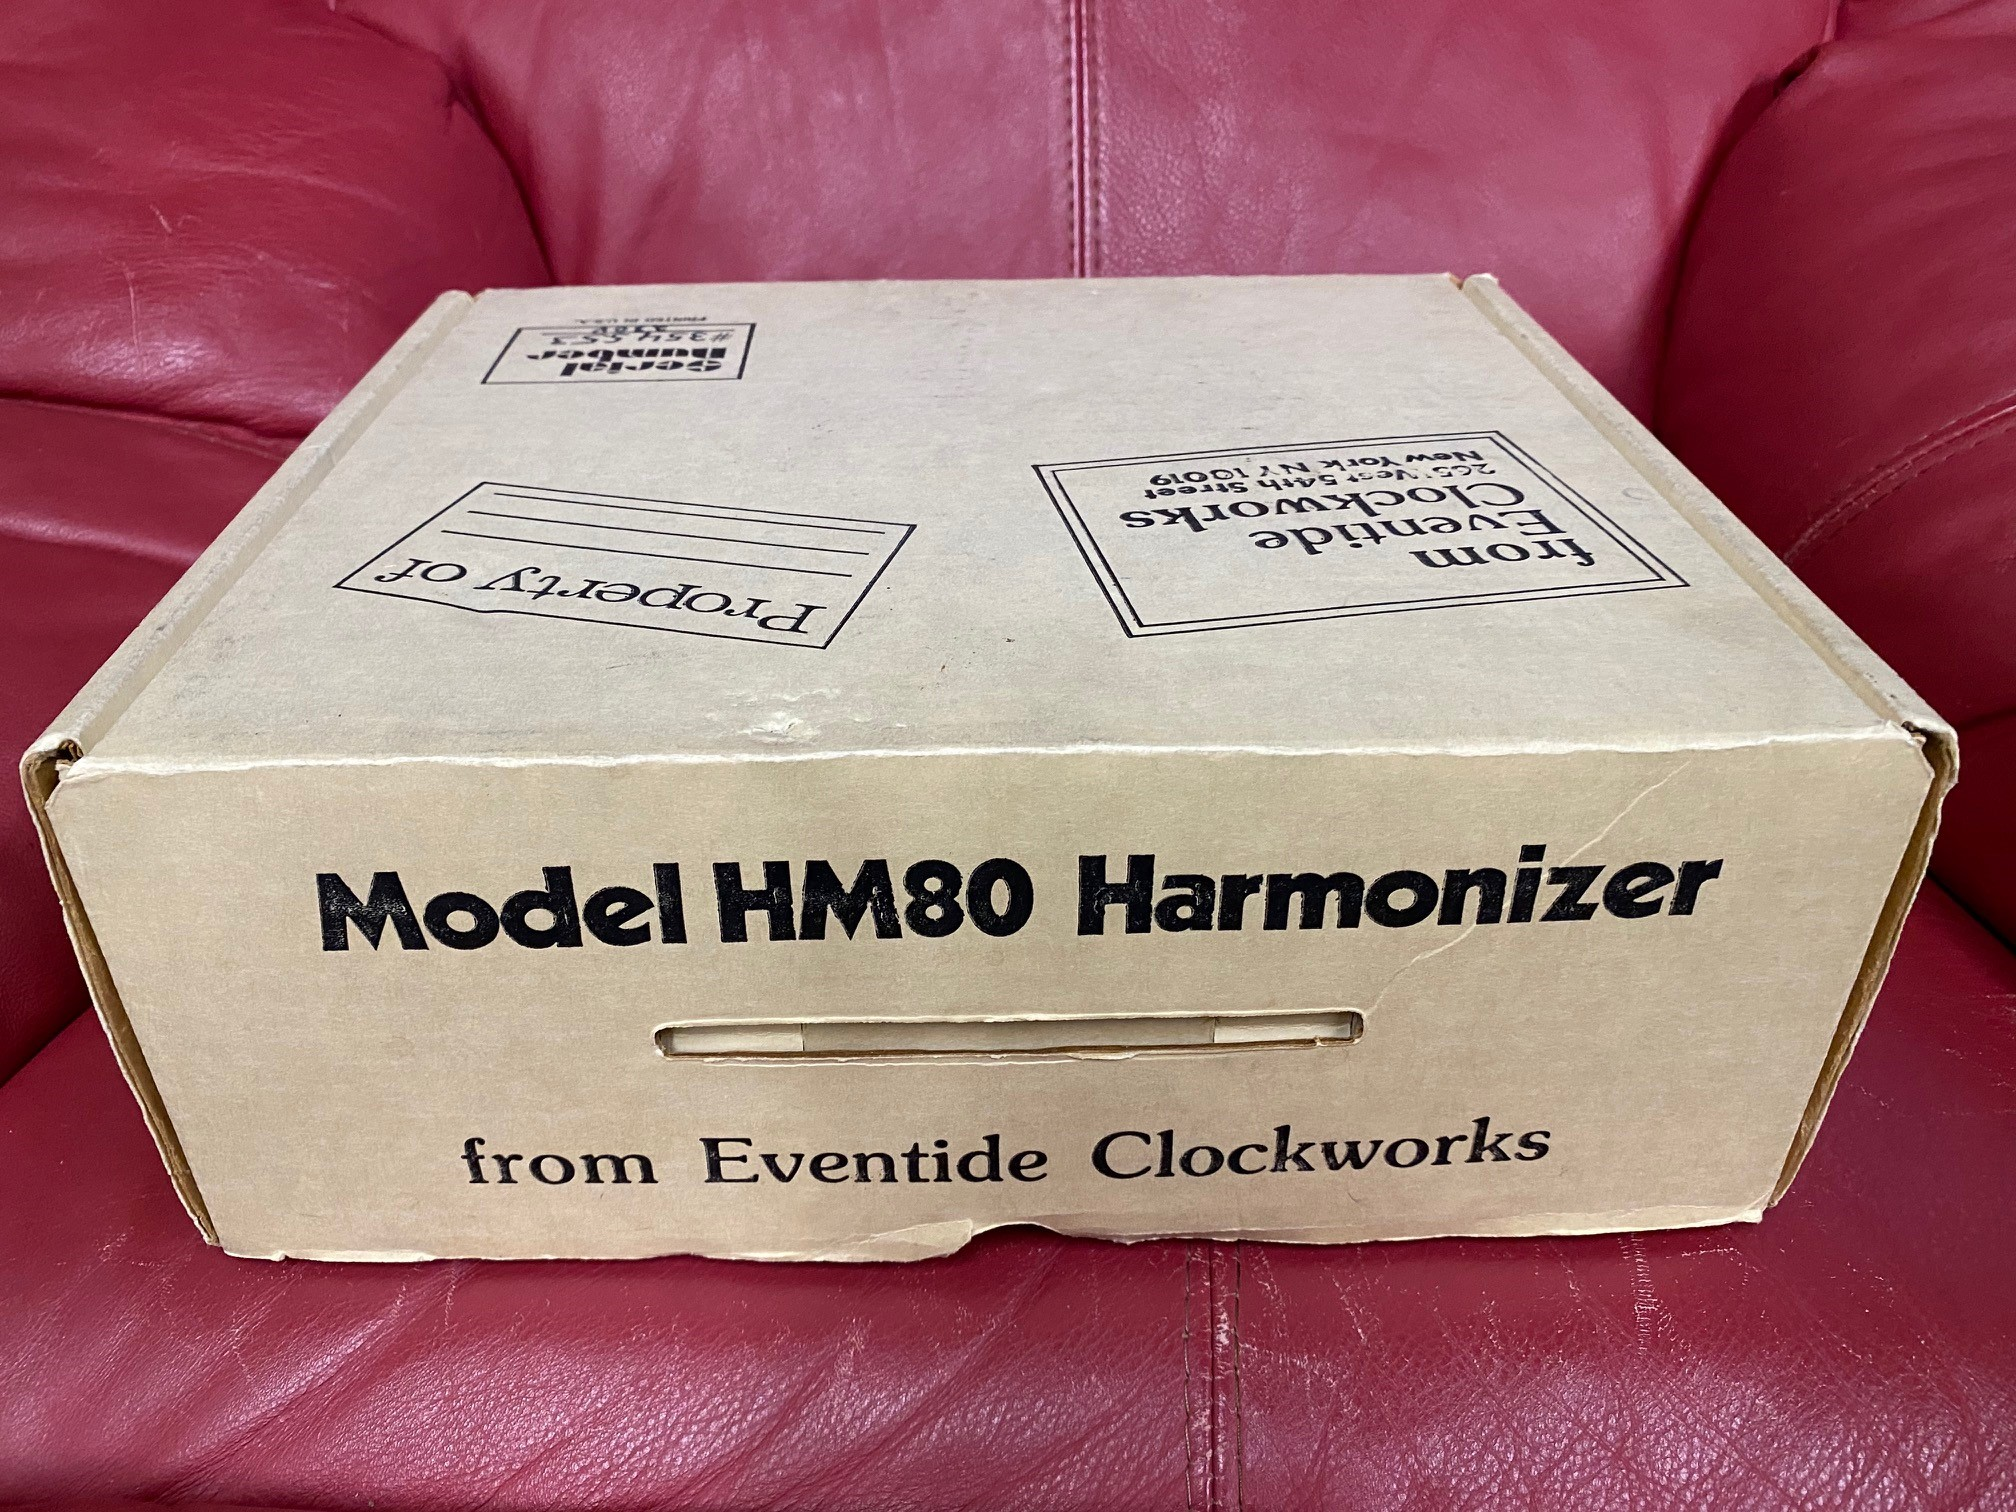 A Fully Packaged HM80